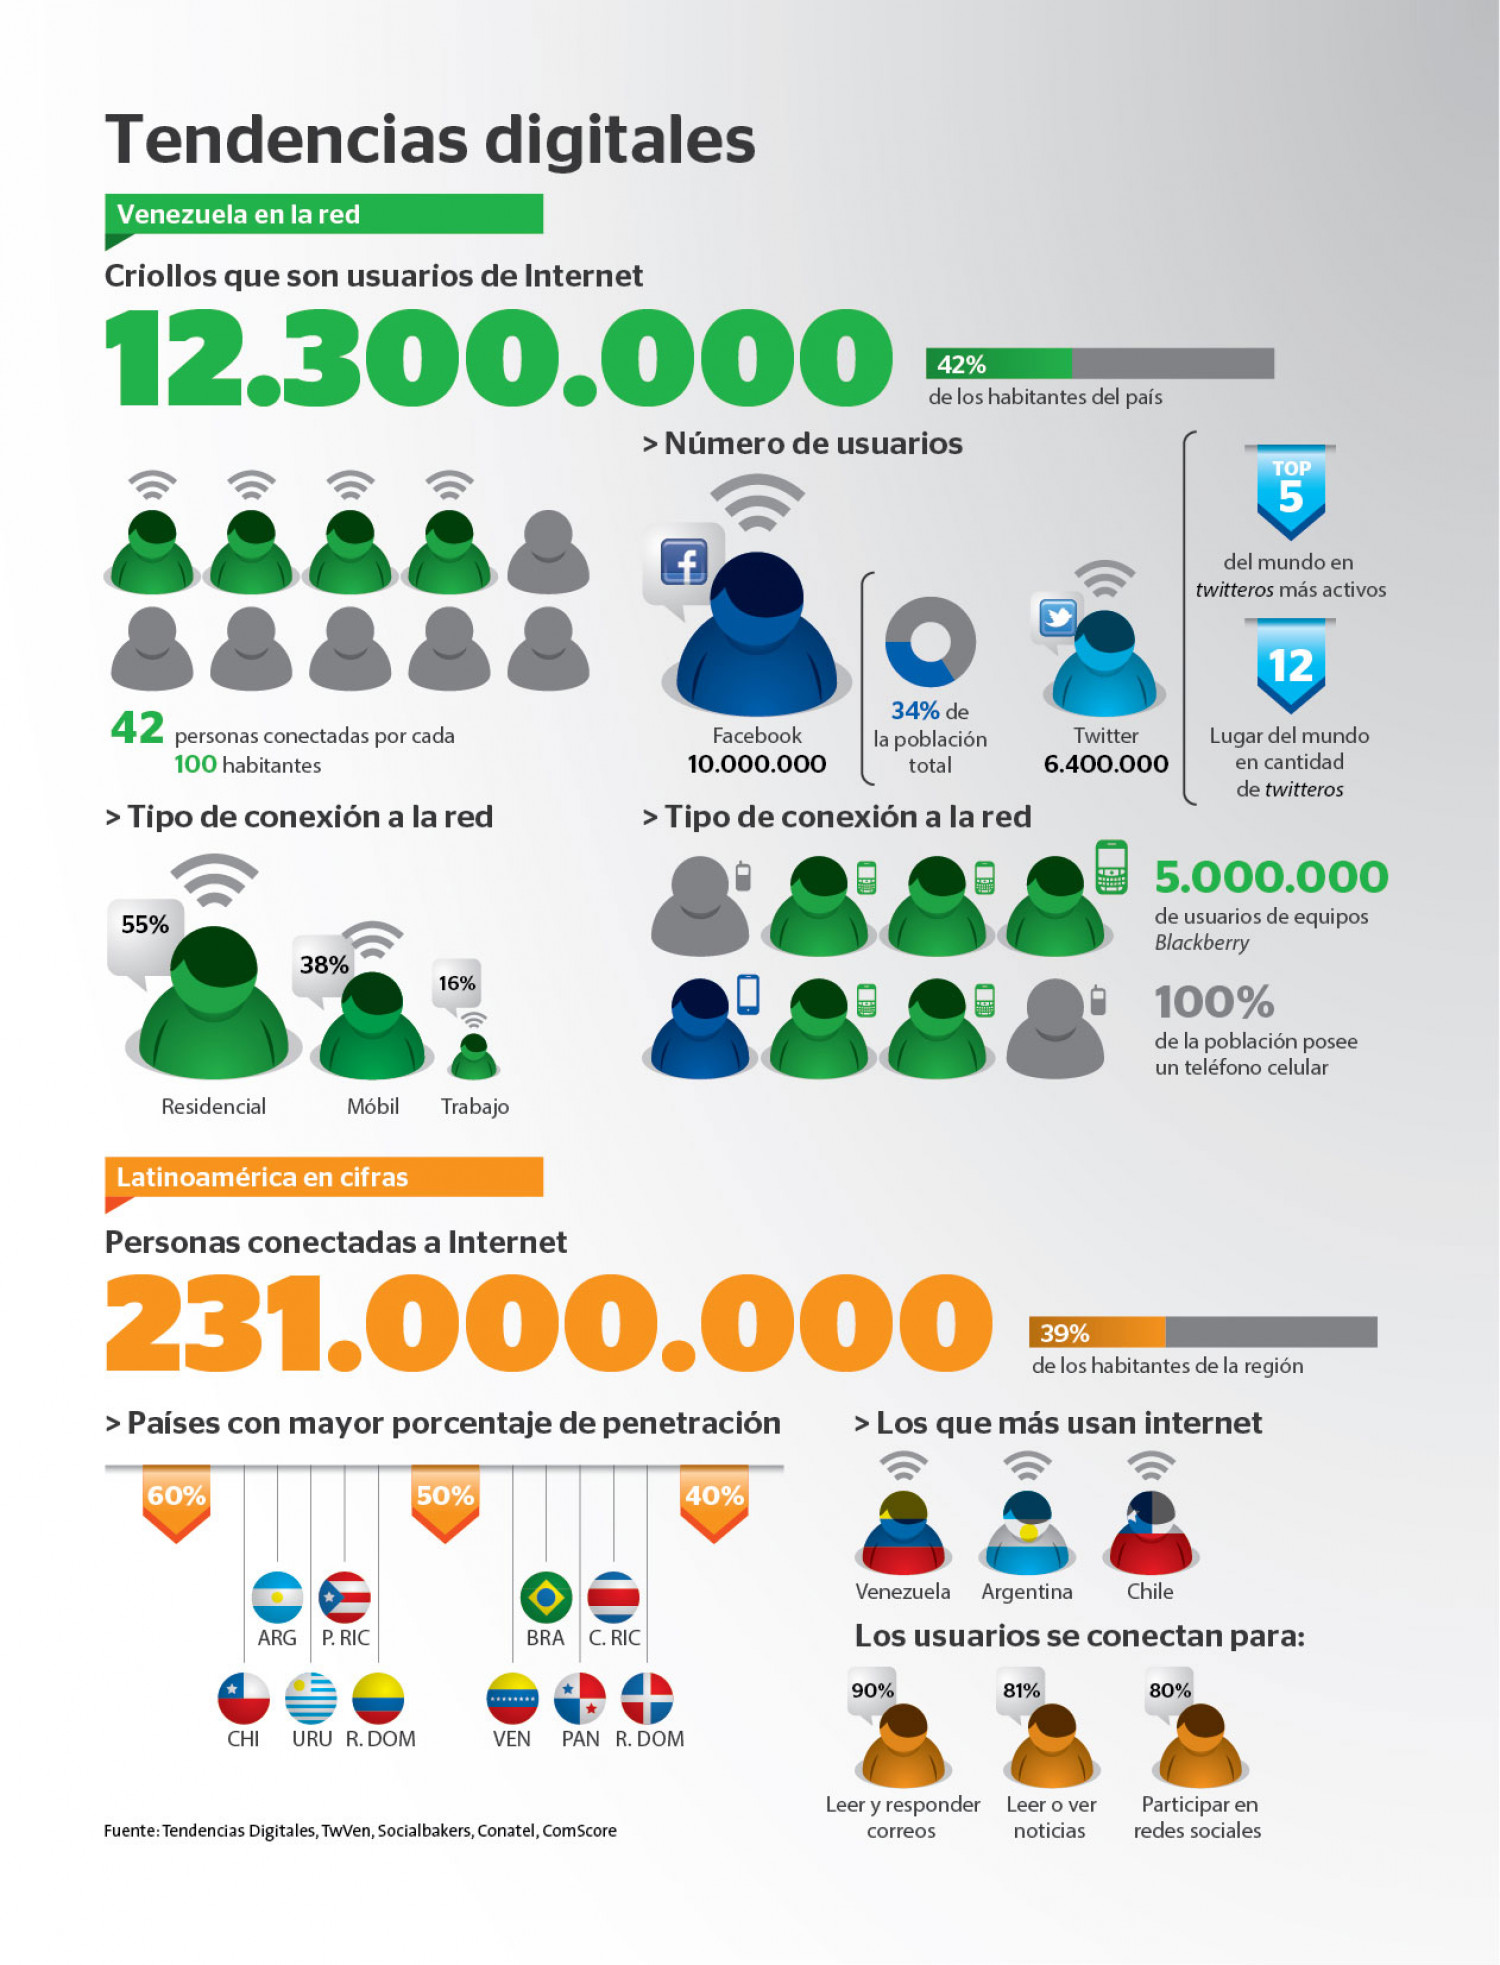 Tendencias Digitales Infographic